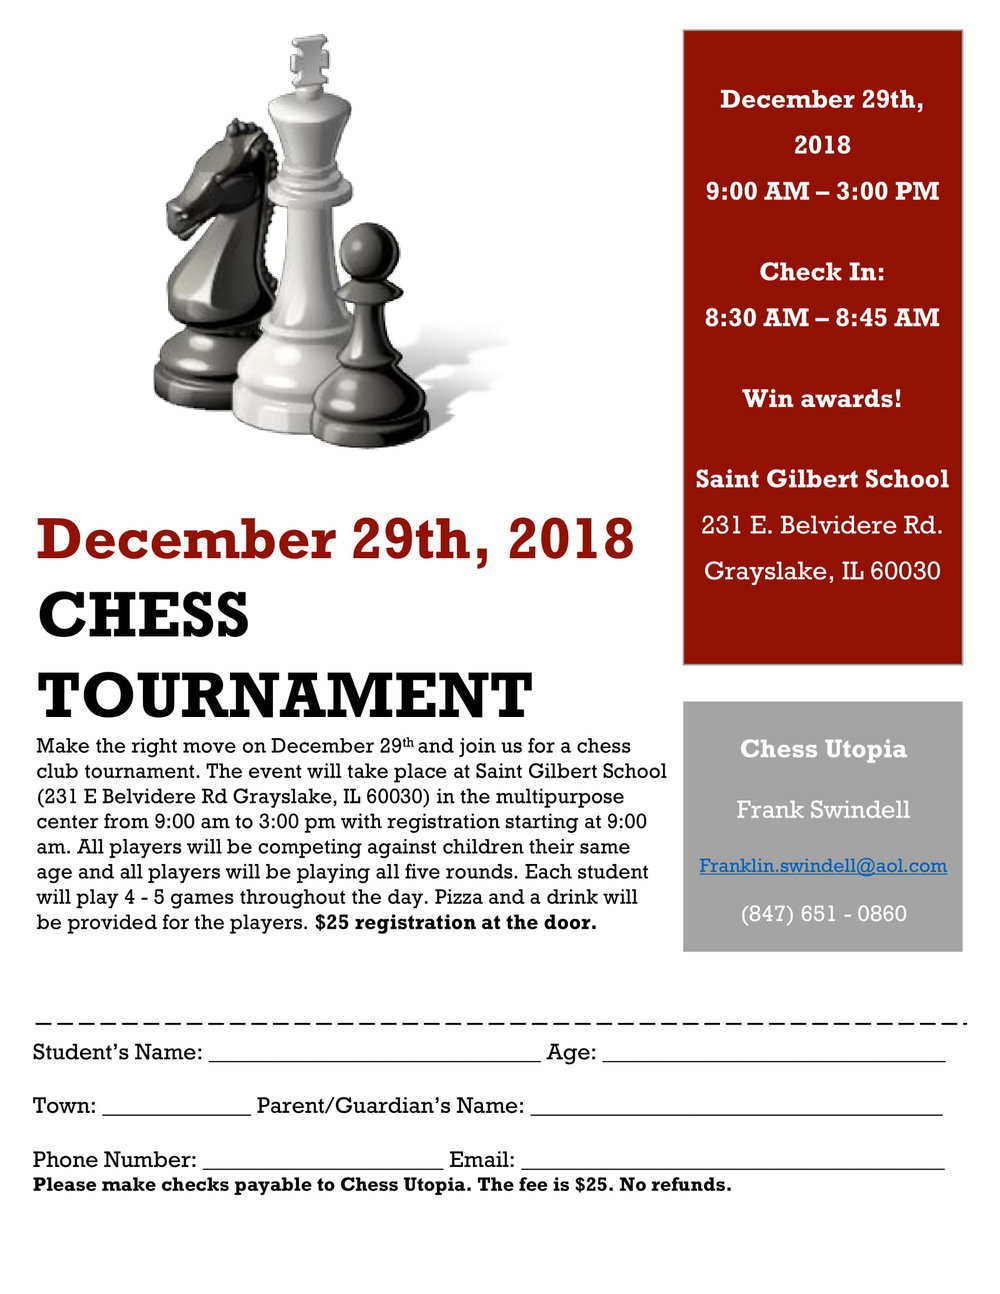 Chess Tournament Flyer-1.jpg